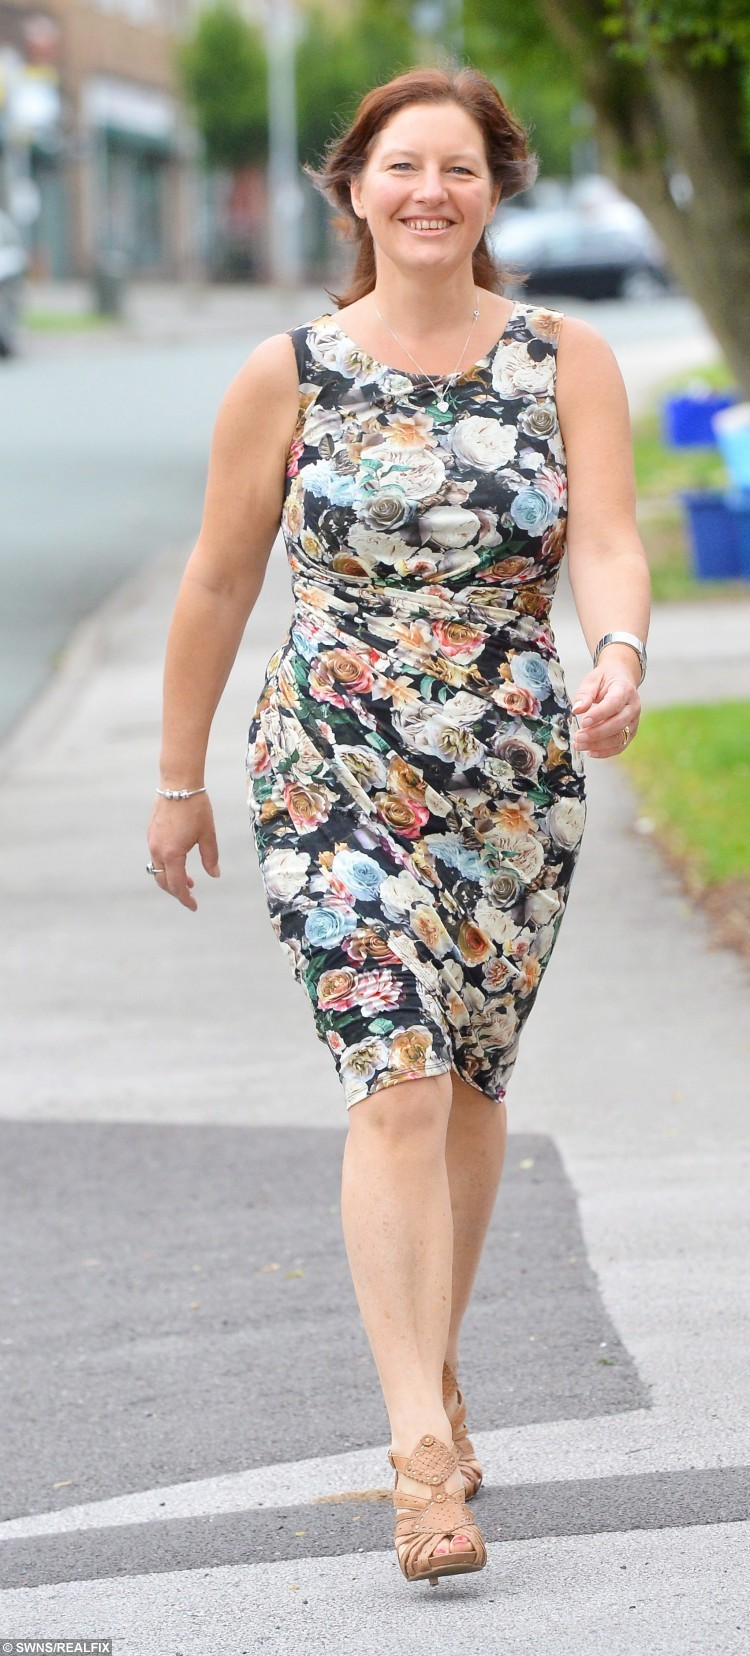 """Louise Bentley, 47, from Newcastle under Lyme, Staffs, who lost four stone in less than a year after she was horrified after seeing herself 'looking huge' in her ice bucket challenge video.  A mum-of-three lost four stone in less than a year after she was horrified when she saw herself """"looking huge"""" in her ICE BUCKET CHALLENGE video.  See NTI story NTIICE.  Louise Bentley, 47, tipped the scales at 15st 5lb last summer which was heavier than she had been even when she was nine-months pregnant.  After being made redundant from her job as a team manager at Vodafone, the mum took time off to enjoy the school holidays with her three sons.  During the summer, she was nominated by friend Adele Bossons, 46, to take part in the Ice Bucket Challenge.  The craze, which swept the nation, saw people dunking a bucket of freezing cold water over themselves to raise money for the Motor Neurone Disease Association.  Louise took part in the challenge with her husband Phil, 46, and three sons Connor, 15, Ben, 13 and nine-year-old Nat and posted it on Facebook at the end of August.  But when the mum-of-three looked back at the video she was horrified at how big she looked.  Louise joined her local Slimming World group at the start of September and has since shed an impressive four stone in nine months and now weighs a healthy 11st 4lb.  She swapped chocolate biscuits and gin and tonic for healthy meals and has gone from a frumpy size 18 to a svelte size 12."""